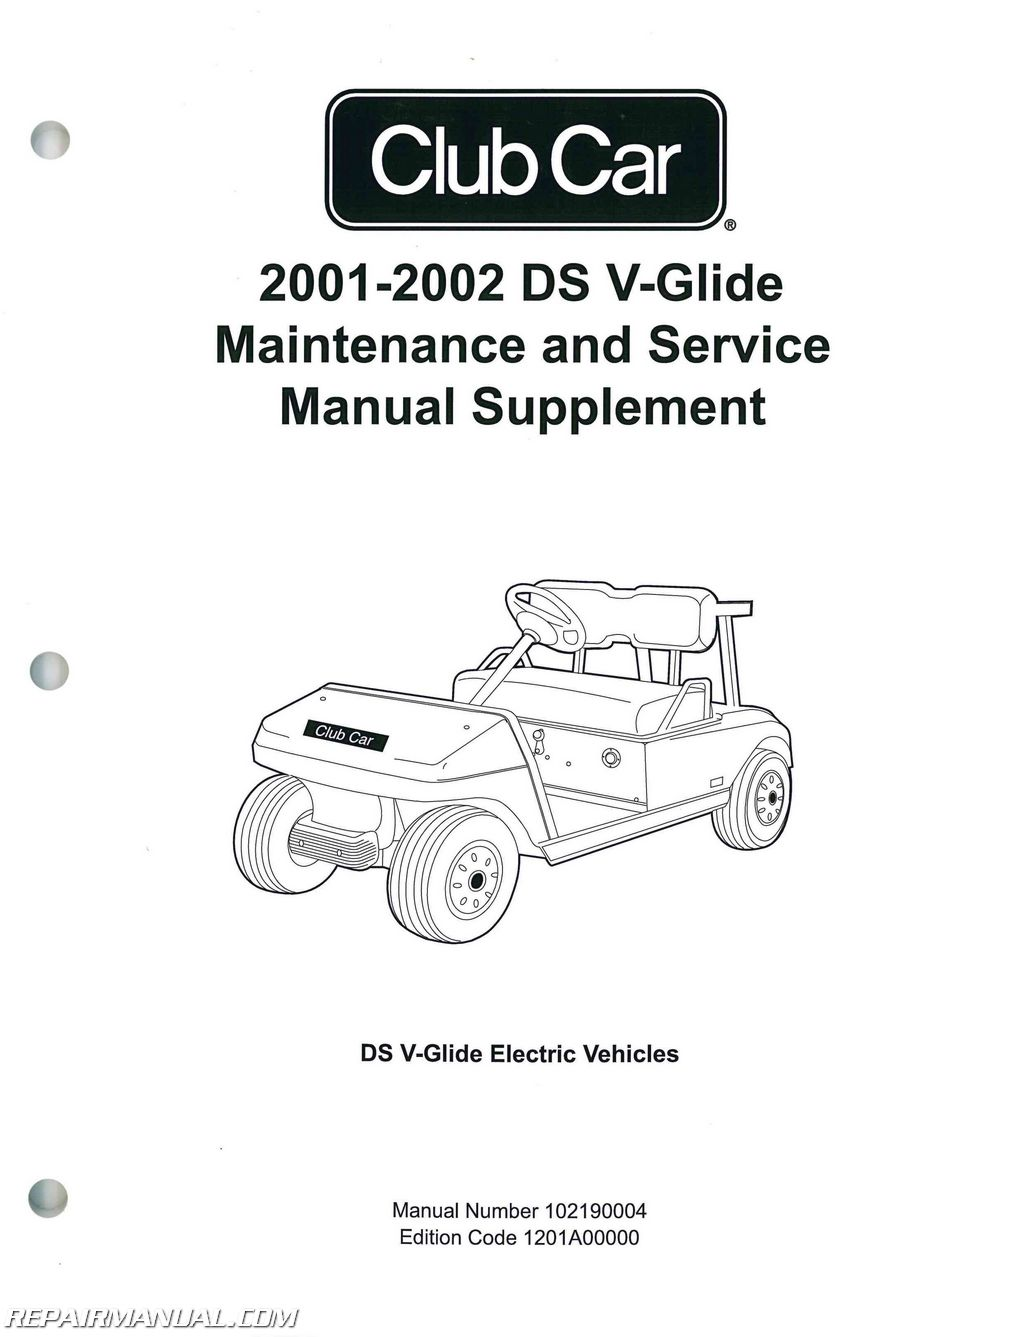 hight resolution of 2001 2002 club car ds v glide golf car maintenance and service 36 volt club car solenoid diagram club car v glide diagram